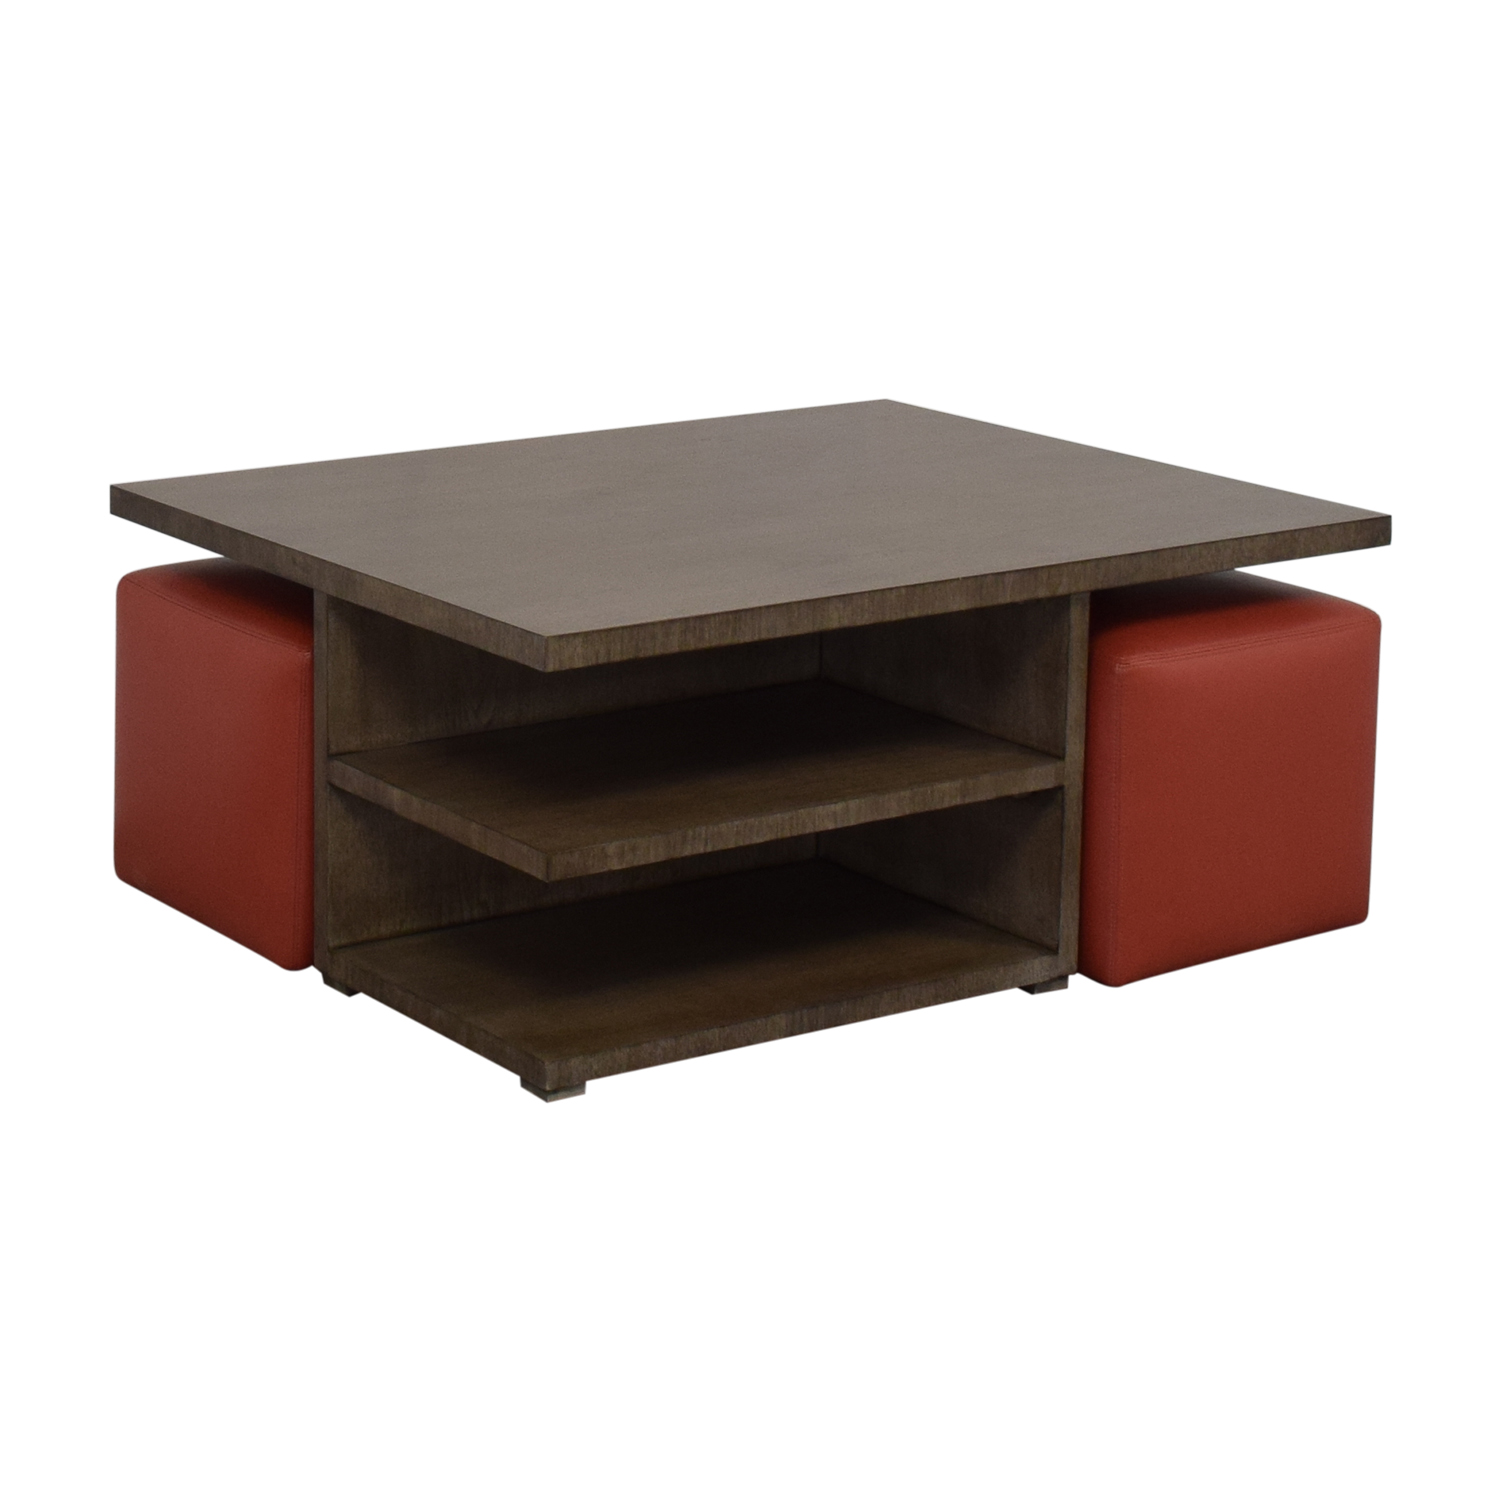 CTH Sherrill Occasional Furniture CTH Sherrill Occasional Furniture Cocktail Table with Ottomans second hand